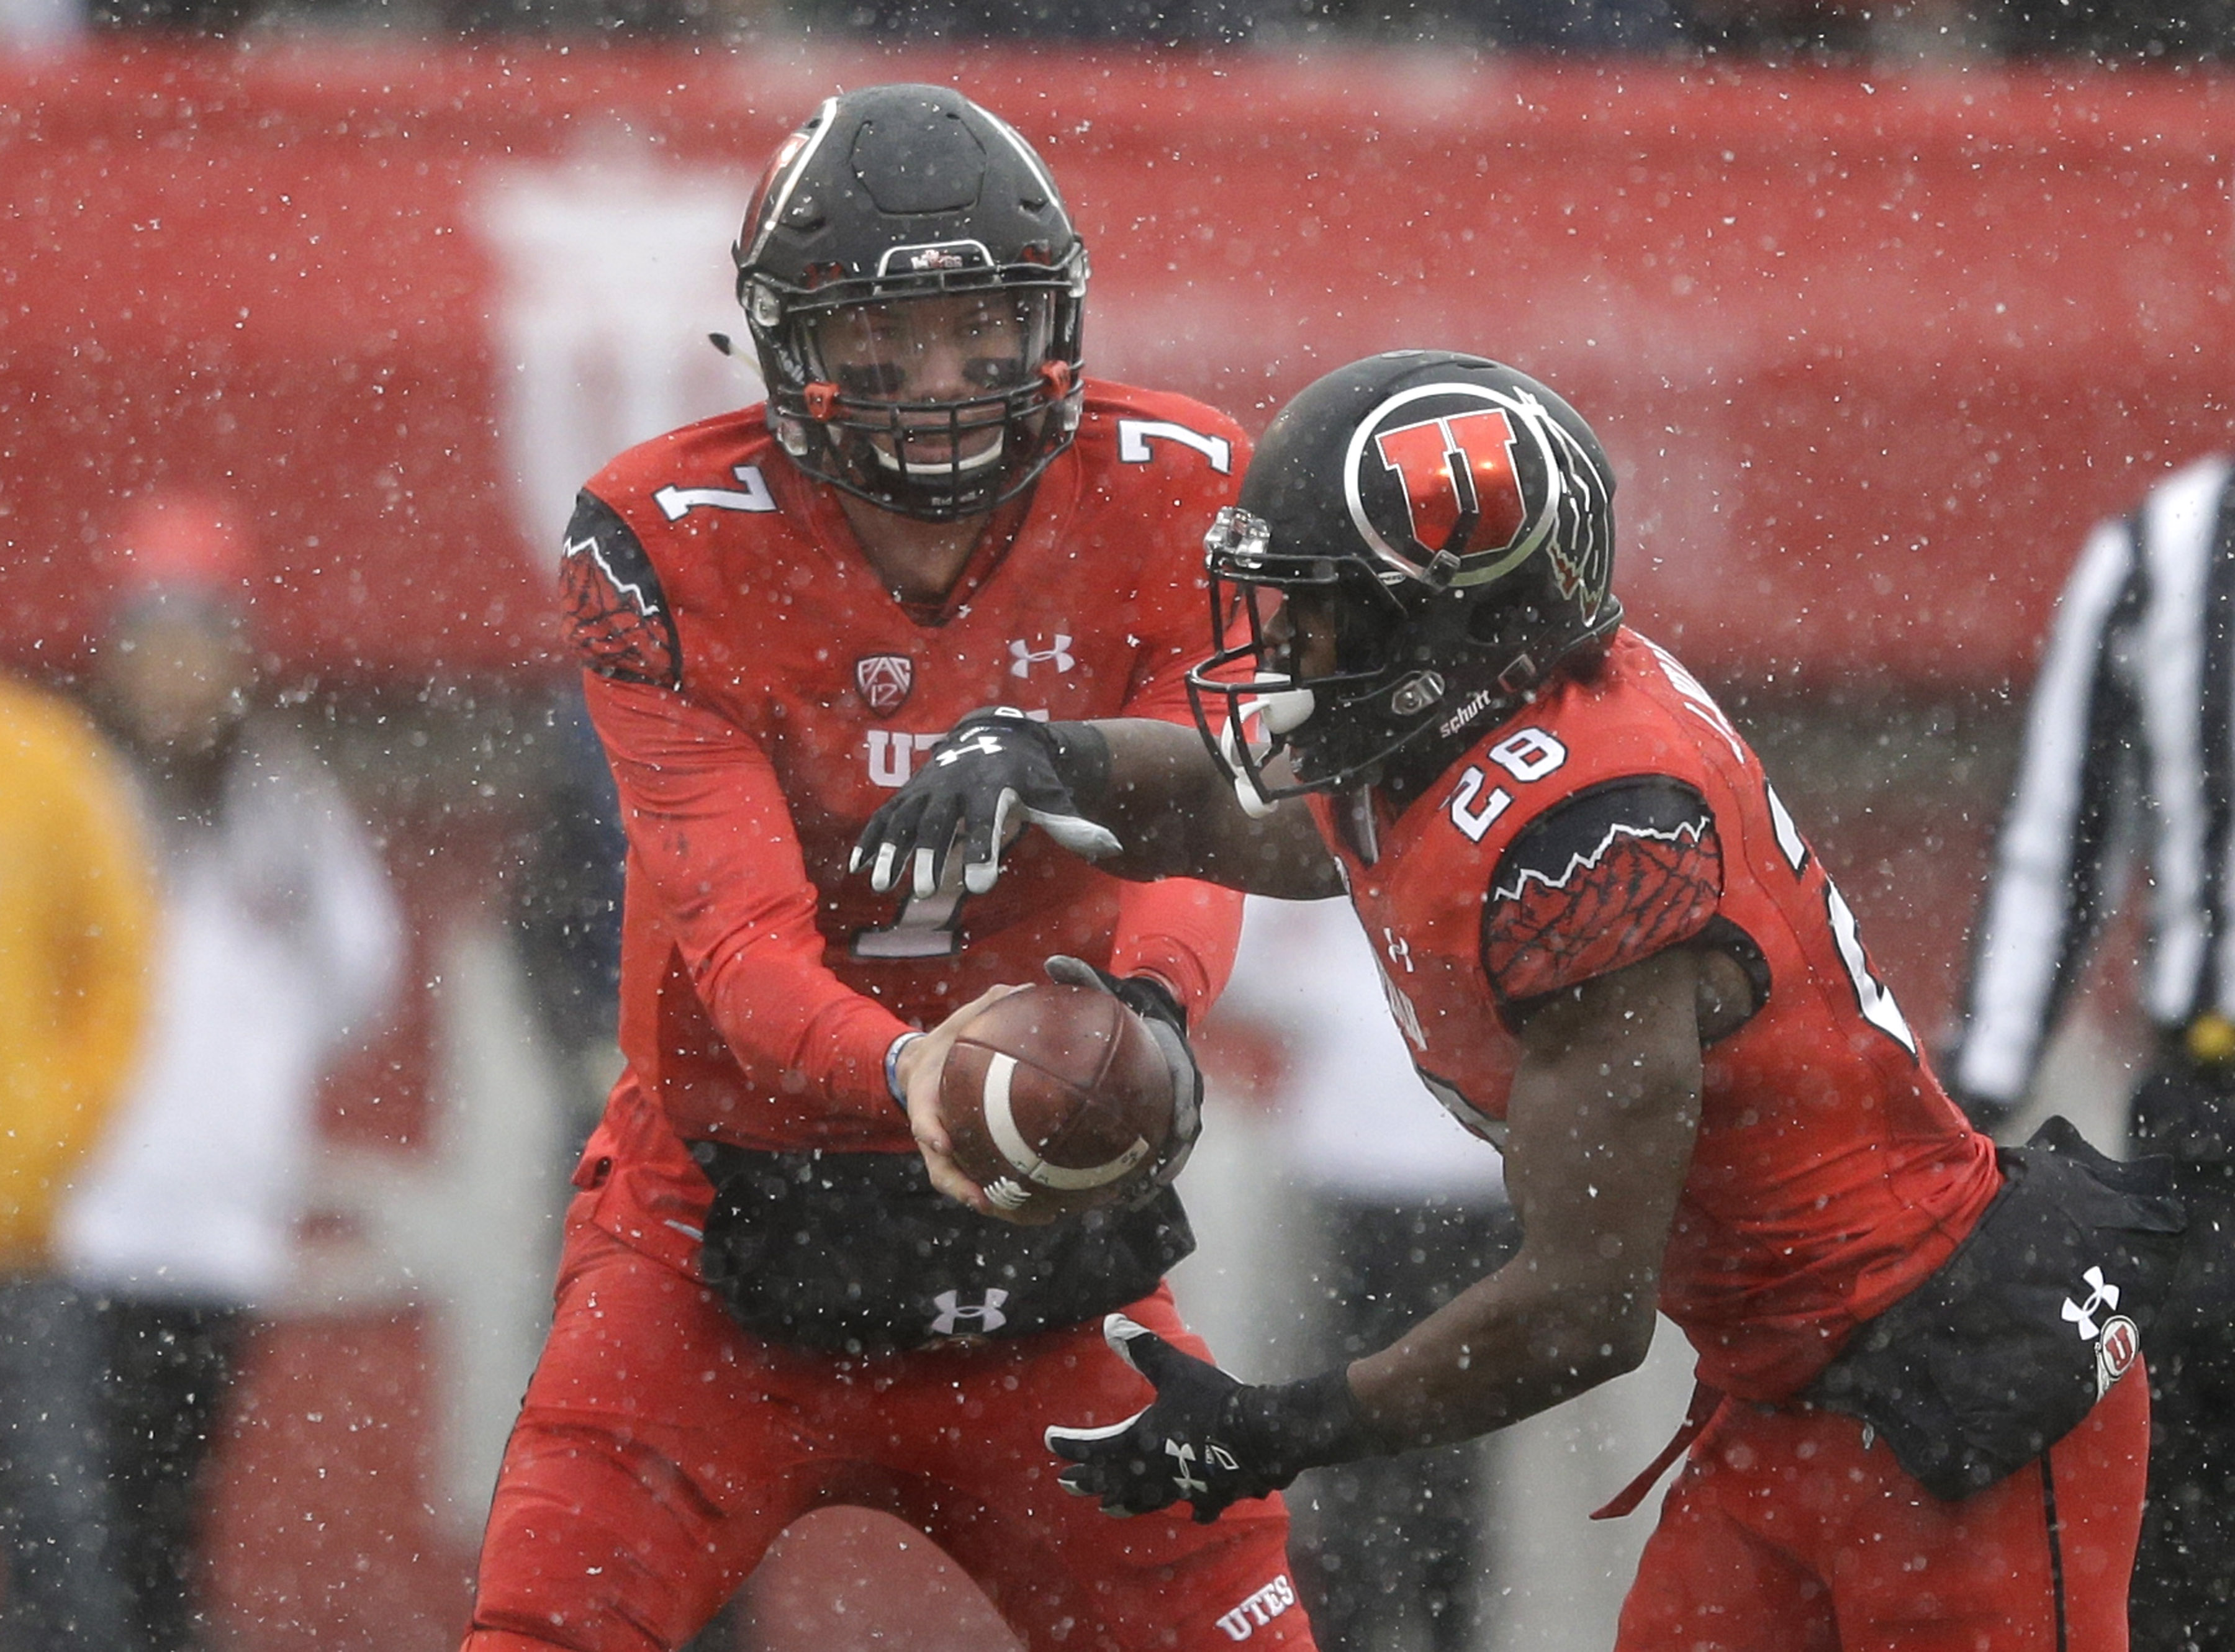 Utah quarterback Travis Wilson (7) hands the ball off to Utah running back Joe Williams (28) in the first half during an NCAA college football game against Colorado Saturday, Nov. 28, 2015, in Salt Lake City. (AP Photo/Rick Bowmer)